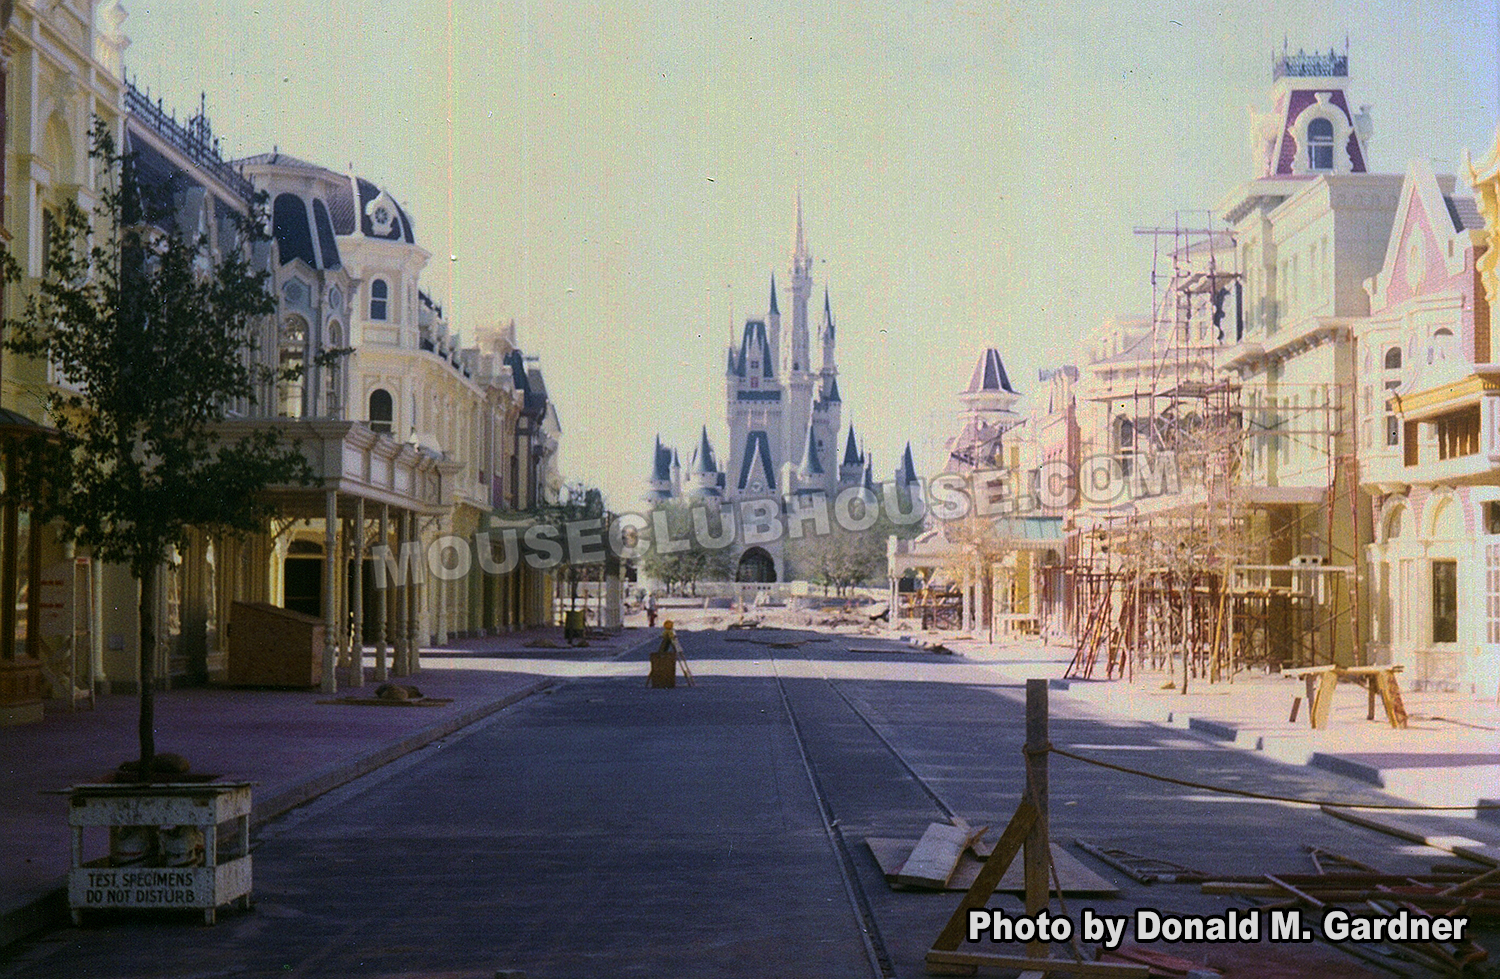 Construction of Main Street in the Magic Kingdom in Walt Disney World, photo taken by Disney Imagineer Don Gardner